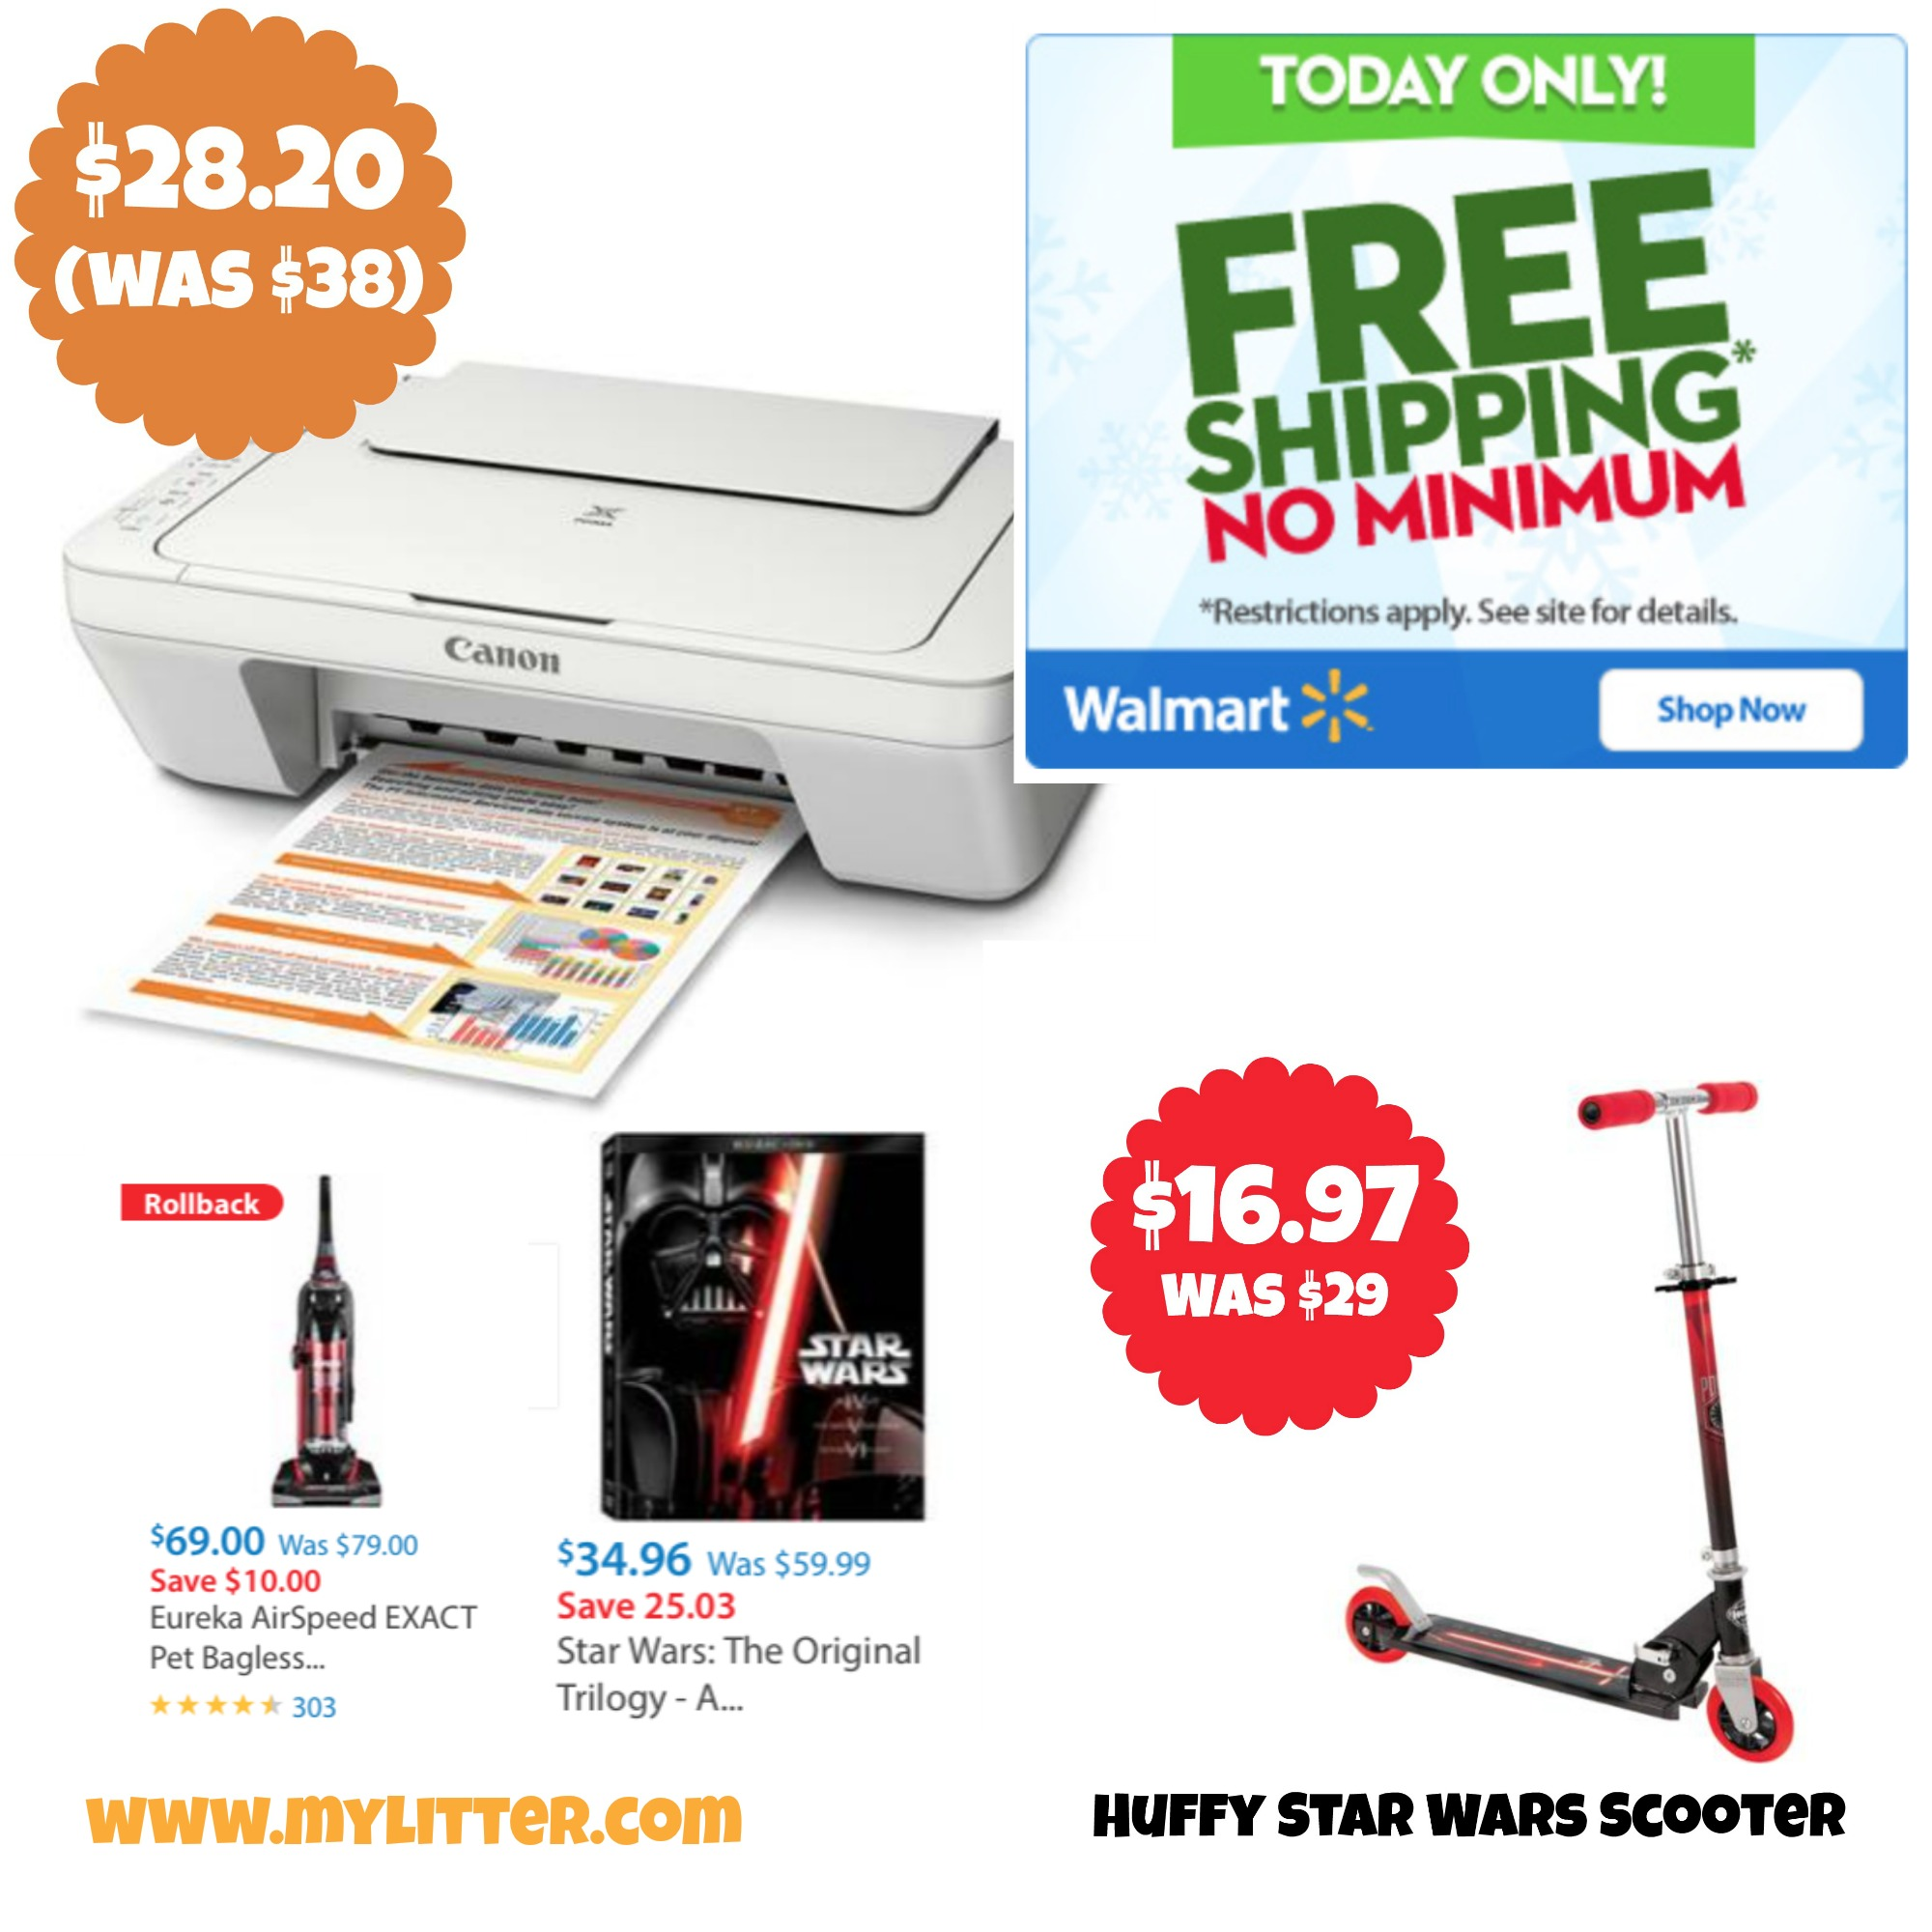 Walmart FREE Shipping all day! + Canon Printer only $28! - MyLitter ...